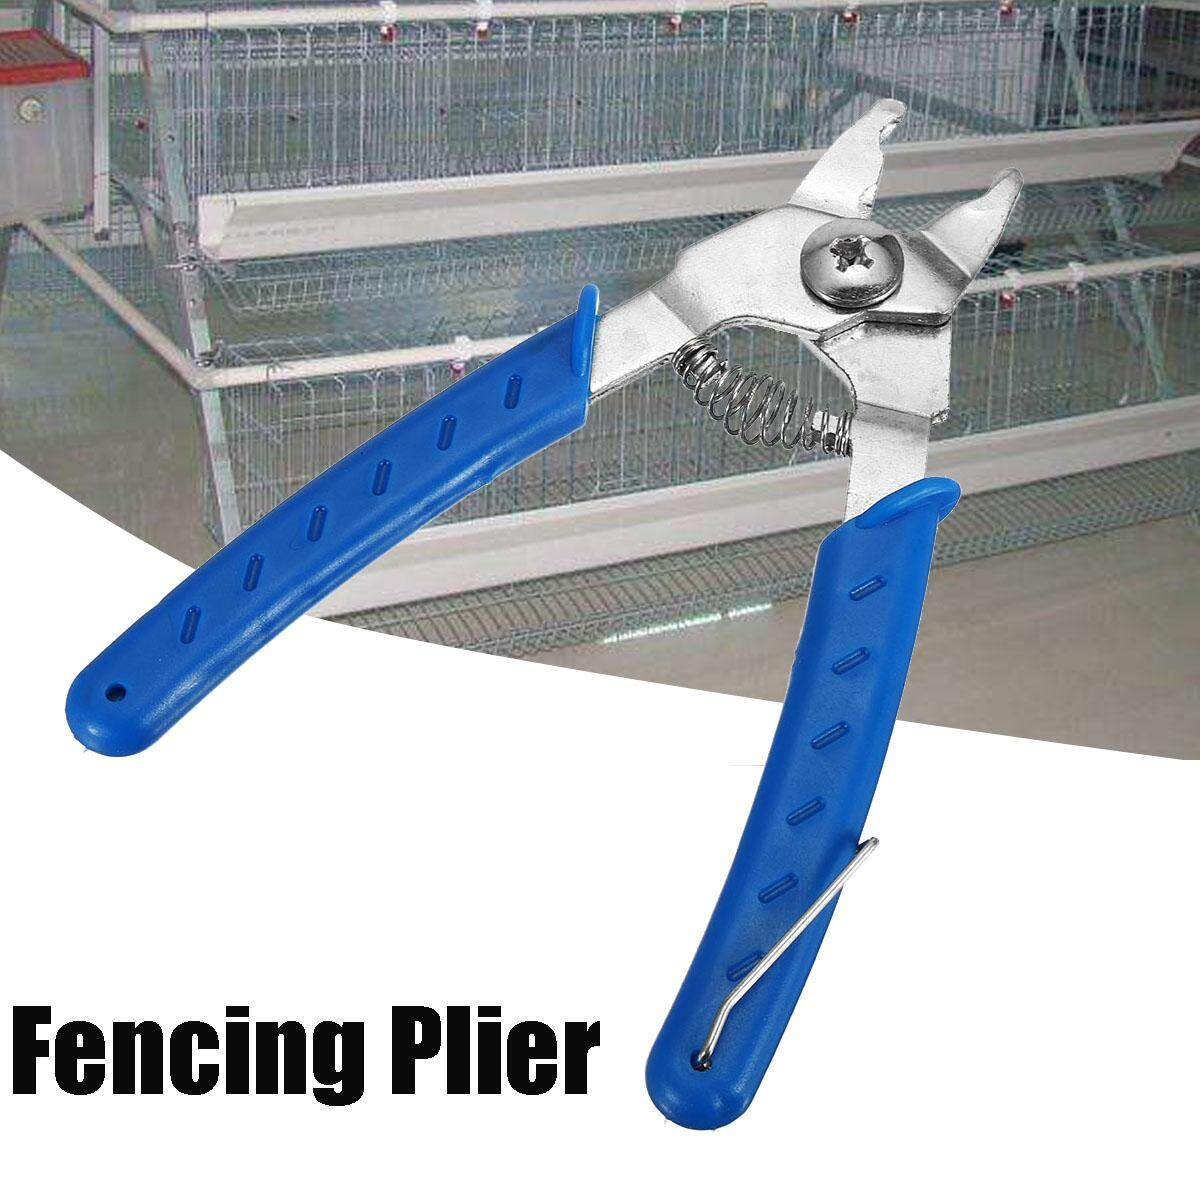 Netting Clip Staples Chicken Mesh Cage Wire Plier Fencing Pliers - intl